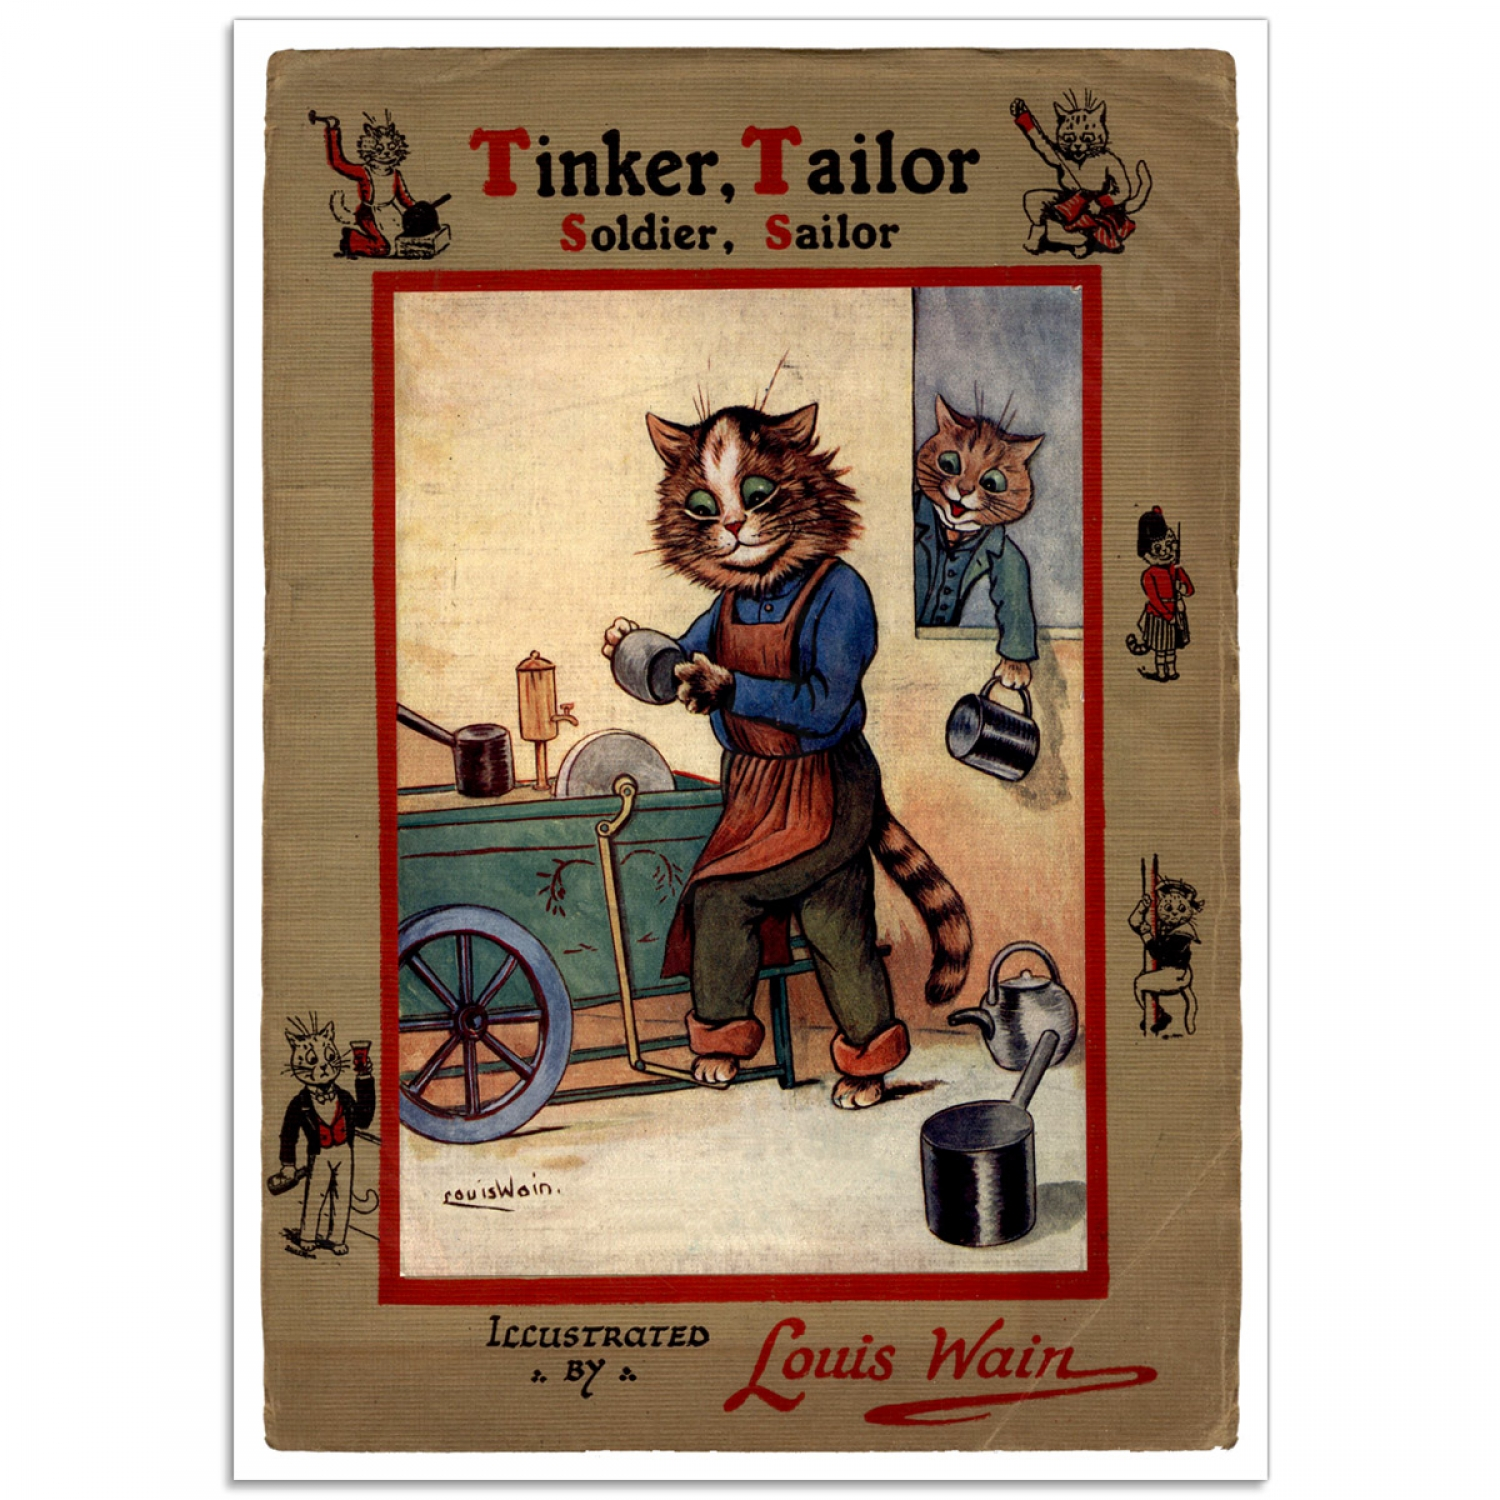 Children S Book Cover Posters : Tinker tailor soldier sailor vintage children s book